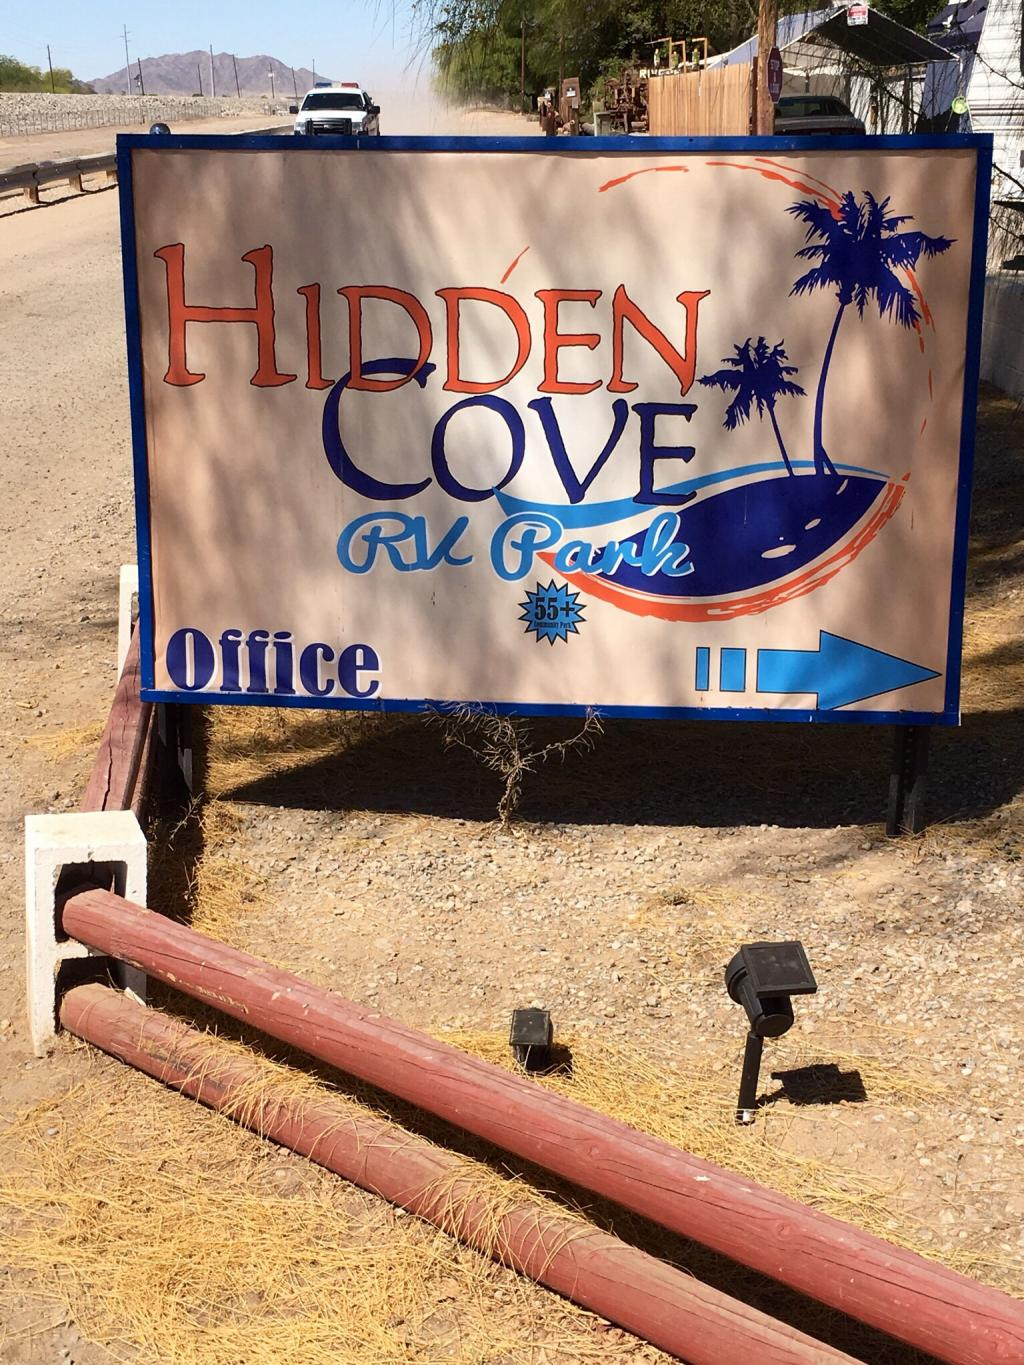 Hidden Cove Rv Park Yuma Arizona